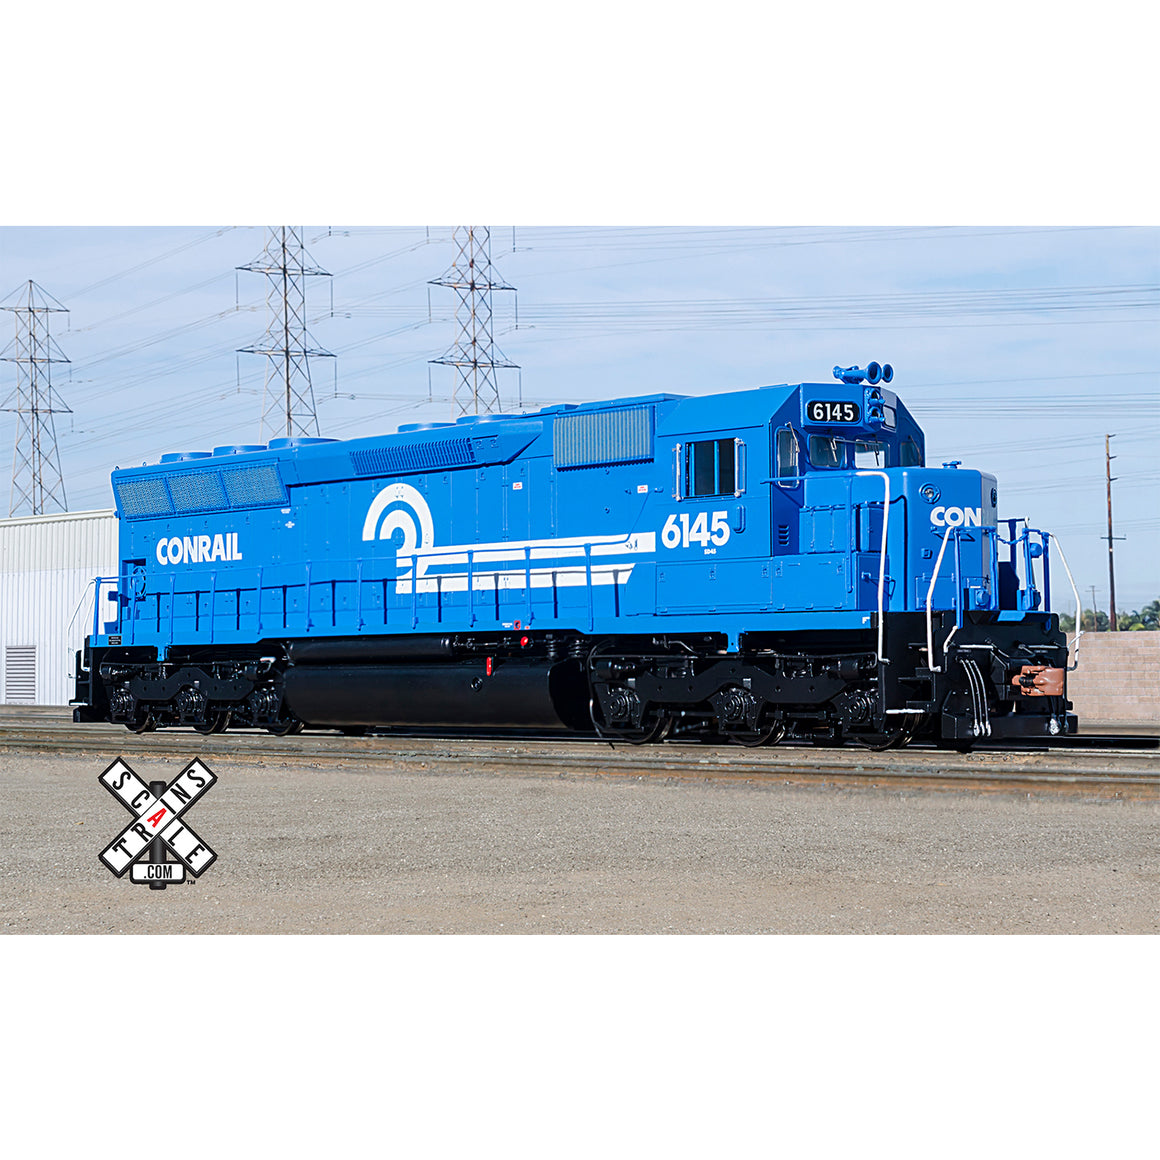 HO Scale: Rivet Counter - EMD SD45 - DCC Ready - Conrail